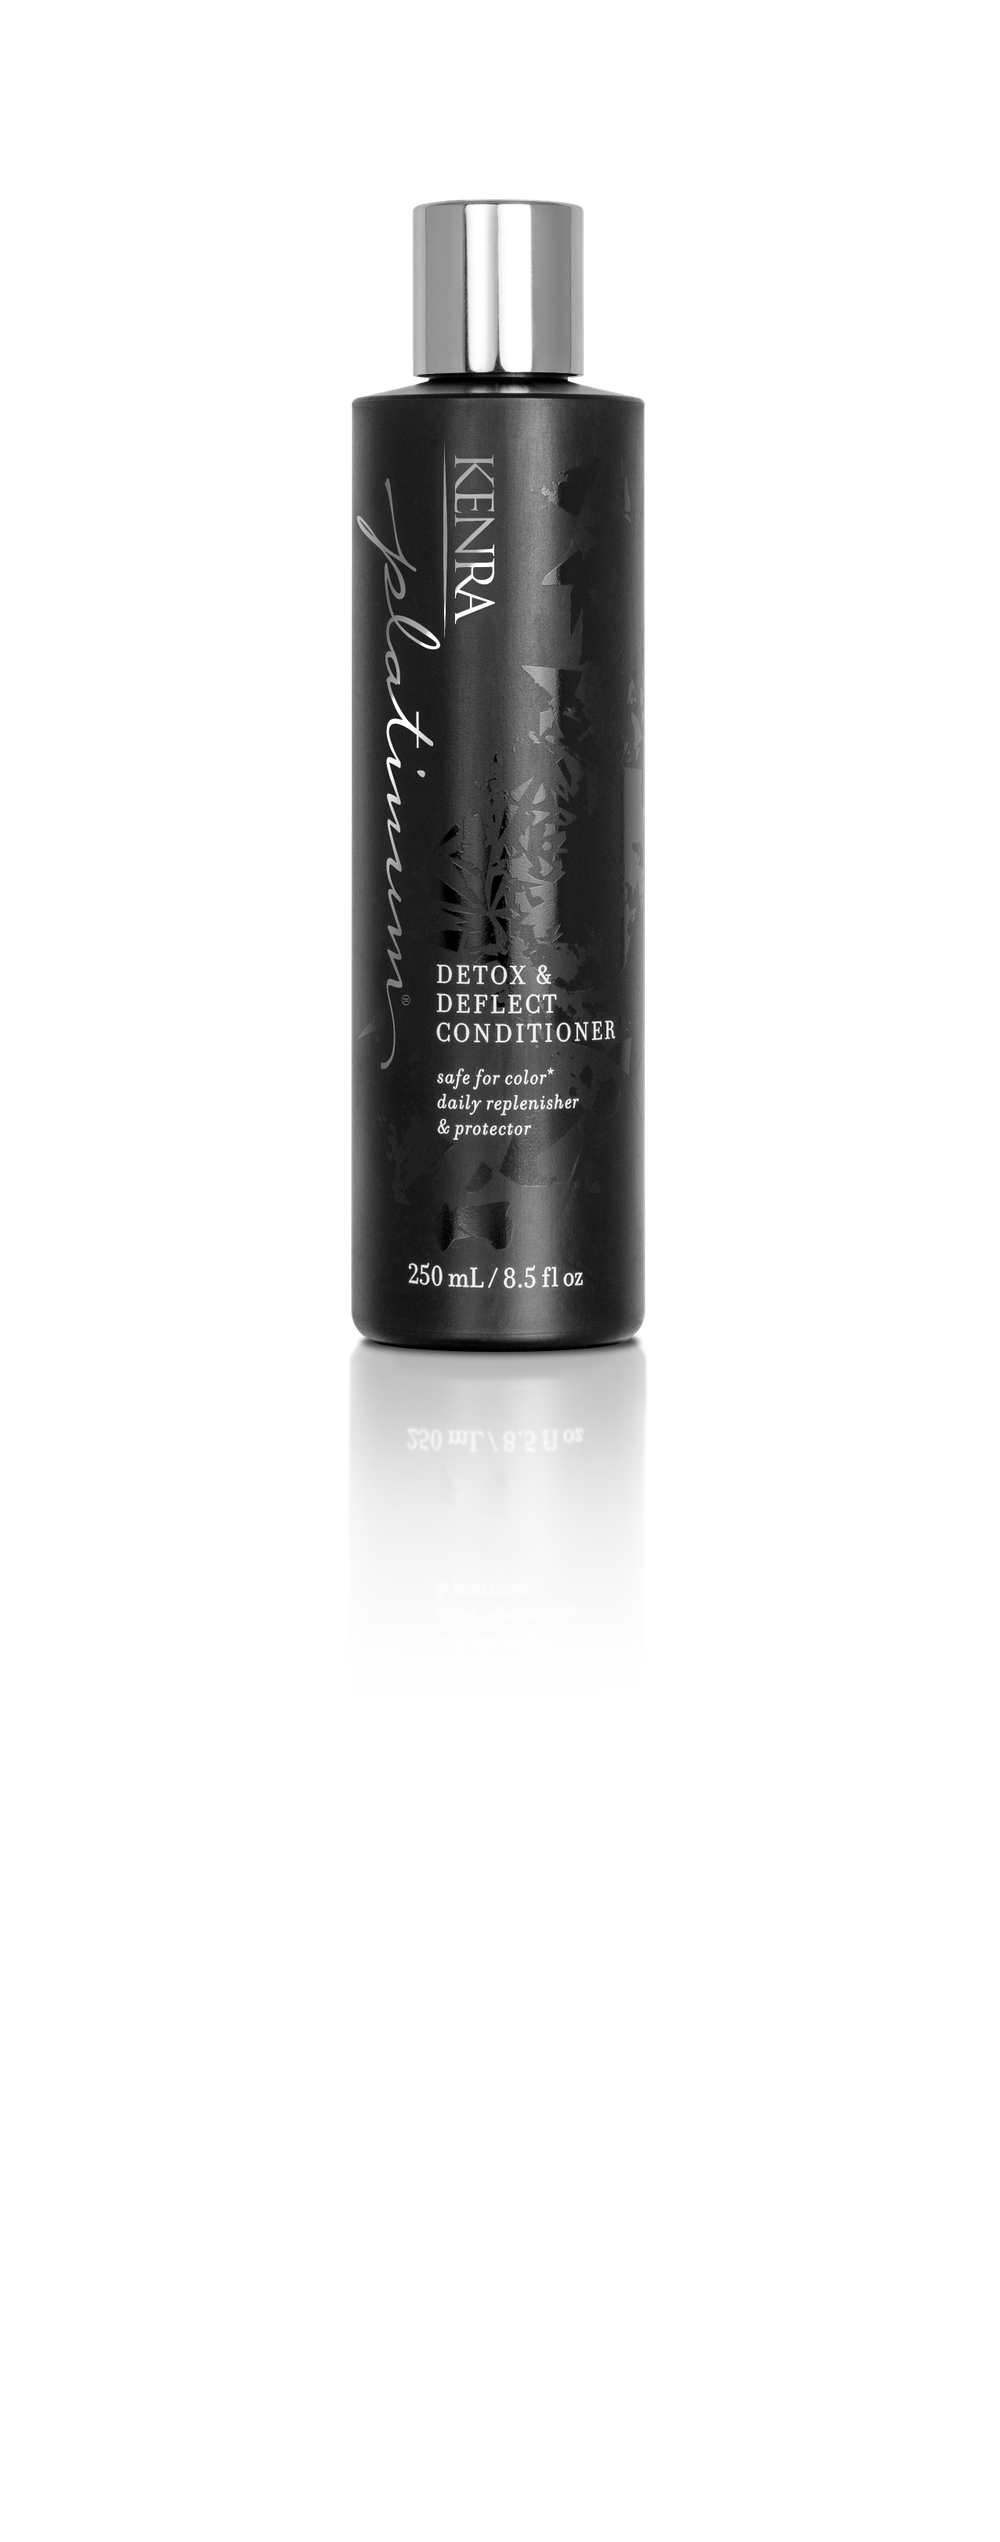 Shampoo and Conditioner: This is color safe daily care duo is enriched with activated charcoal to detoxify and precious diamond dust to deflect everyday pollutants. The Detox &amp; Deflect Conditioner is <div>enriched with diamond dust to deflect everyday pollutants.</div>